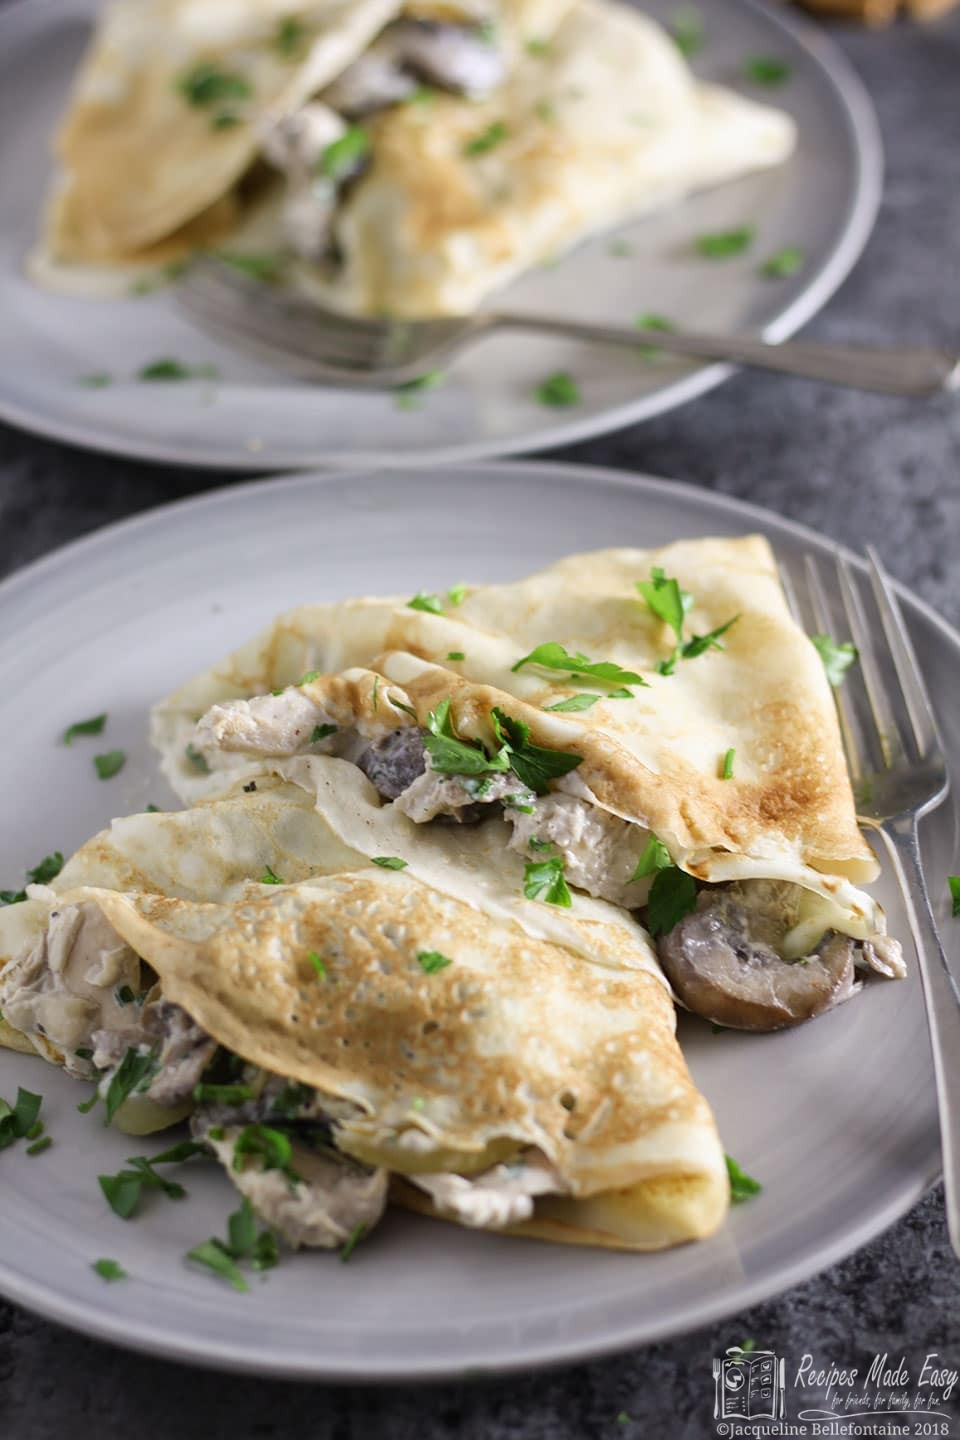 Quick and easy to make savour pancakes filled with a creamy, garlic chicken and mushroom filling